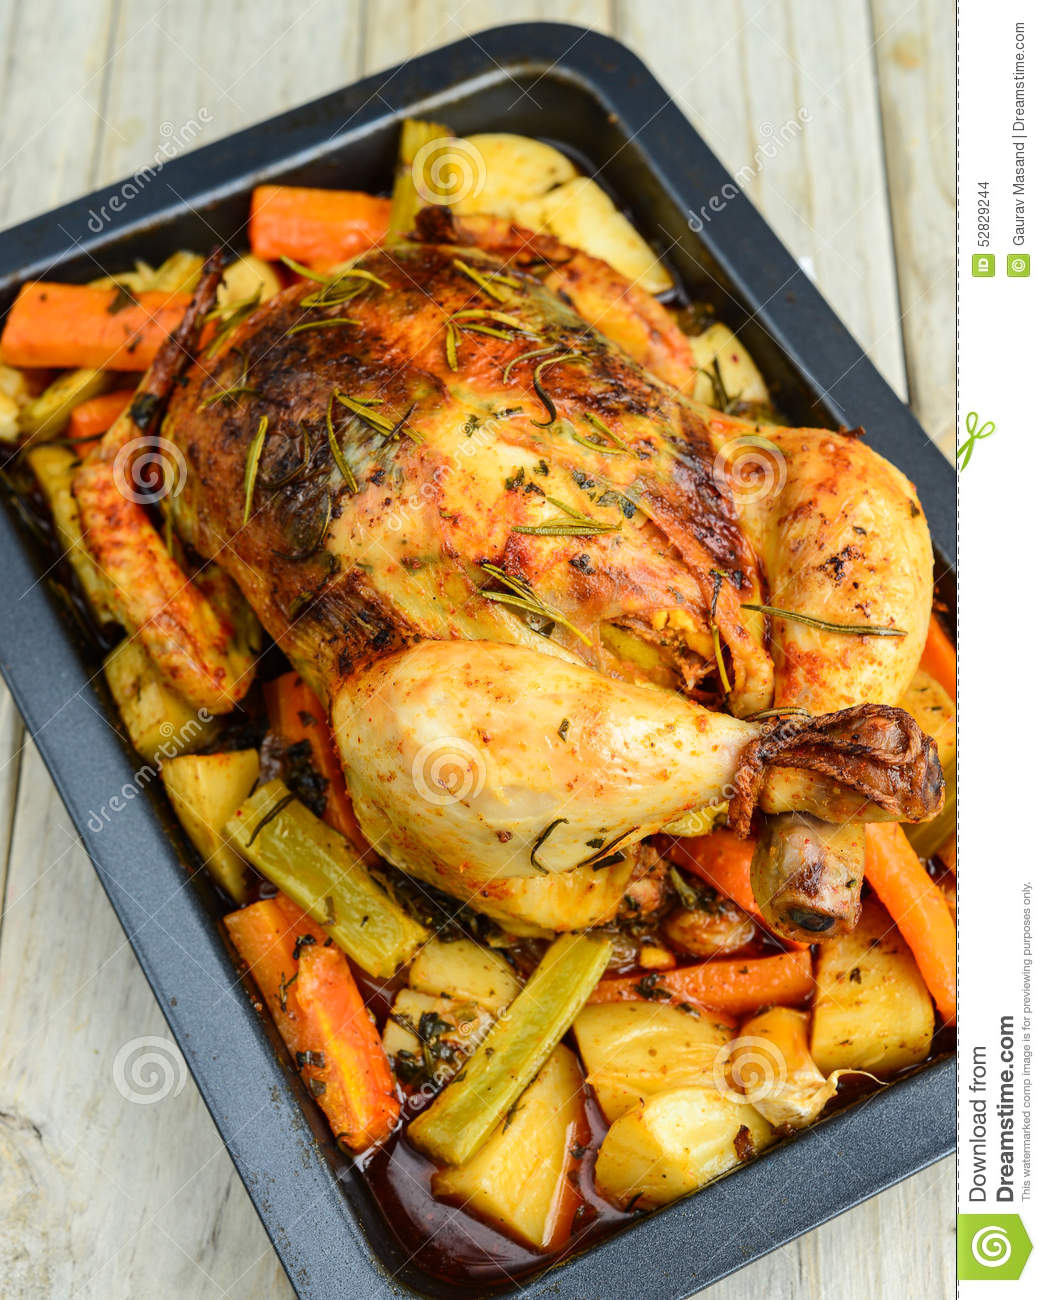 Roasted chicken with herbs and roots vegetables